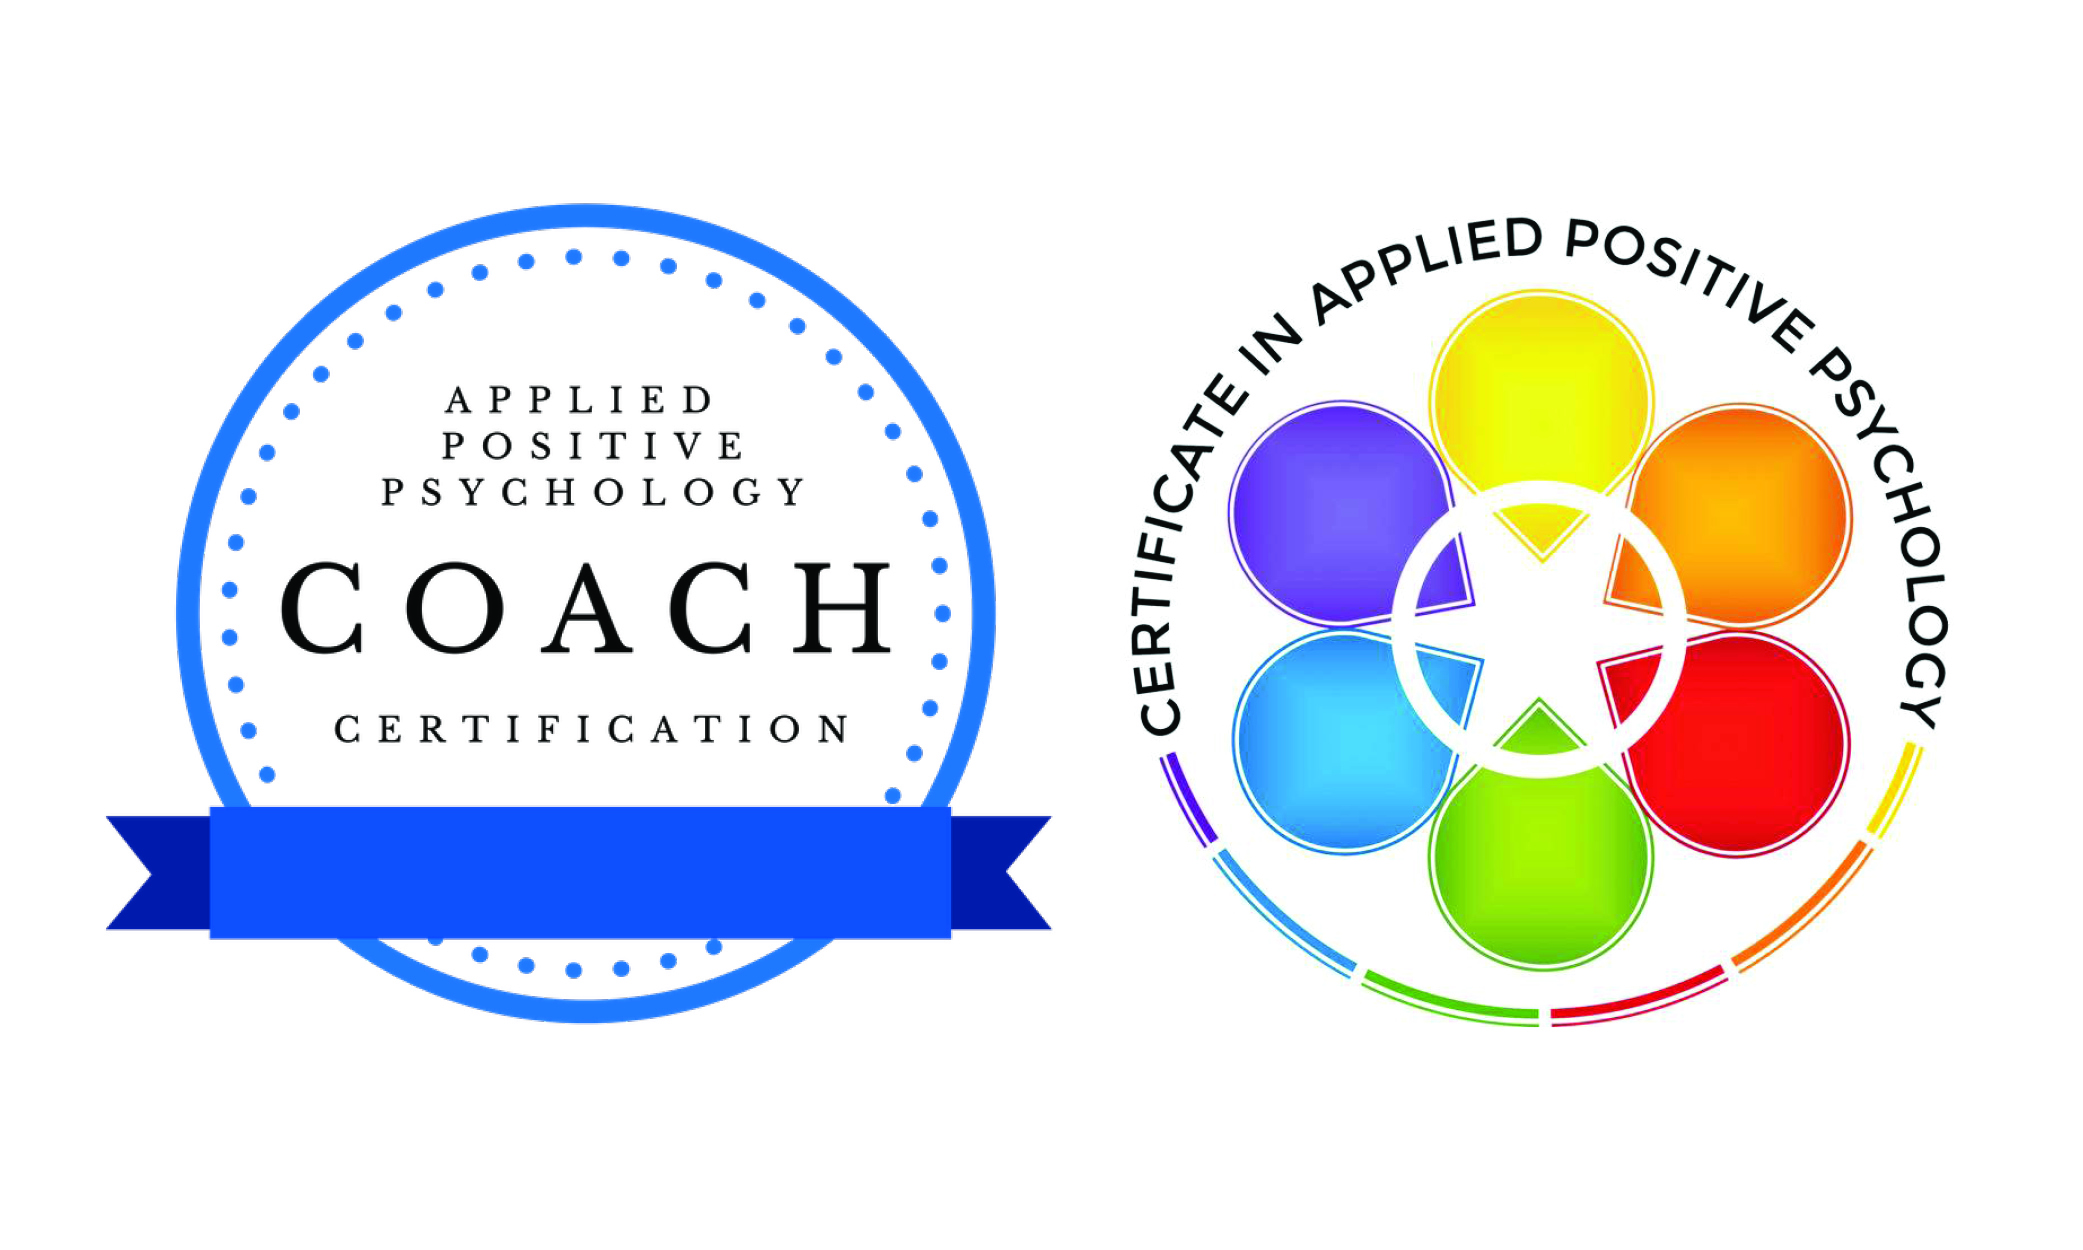 Certifications: - Certified Positive Psychology Coach (in process)Applied Positive Psychology Coaching Certification, The Flourishing CenterCertified Applied Positive Psychology Practitioner Certificate in Applied Positive Psychology, The Flourishing Center